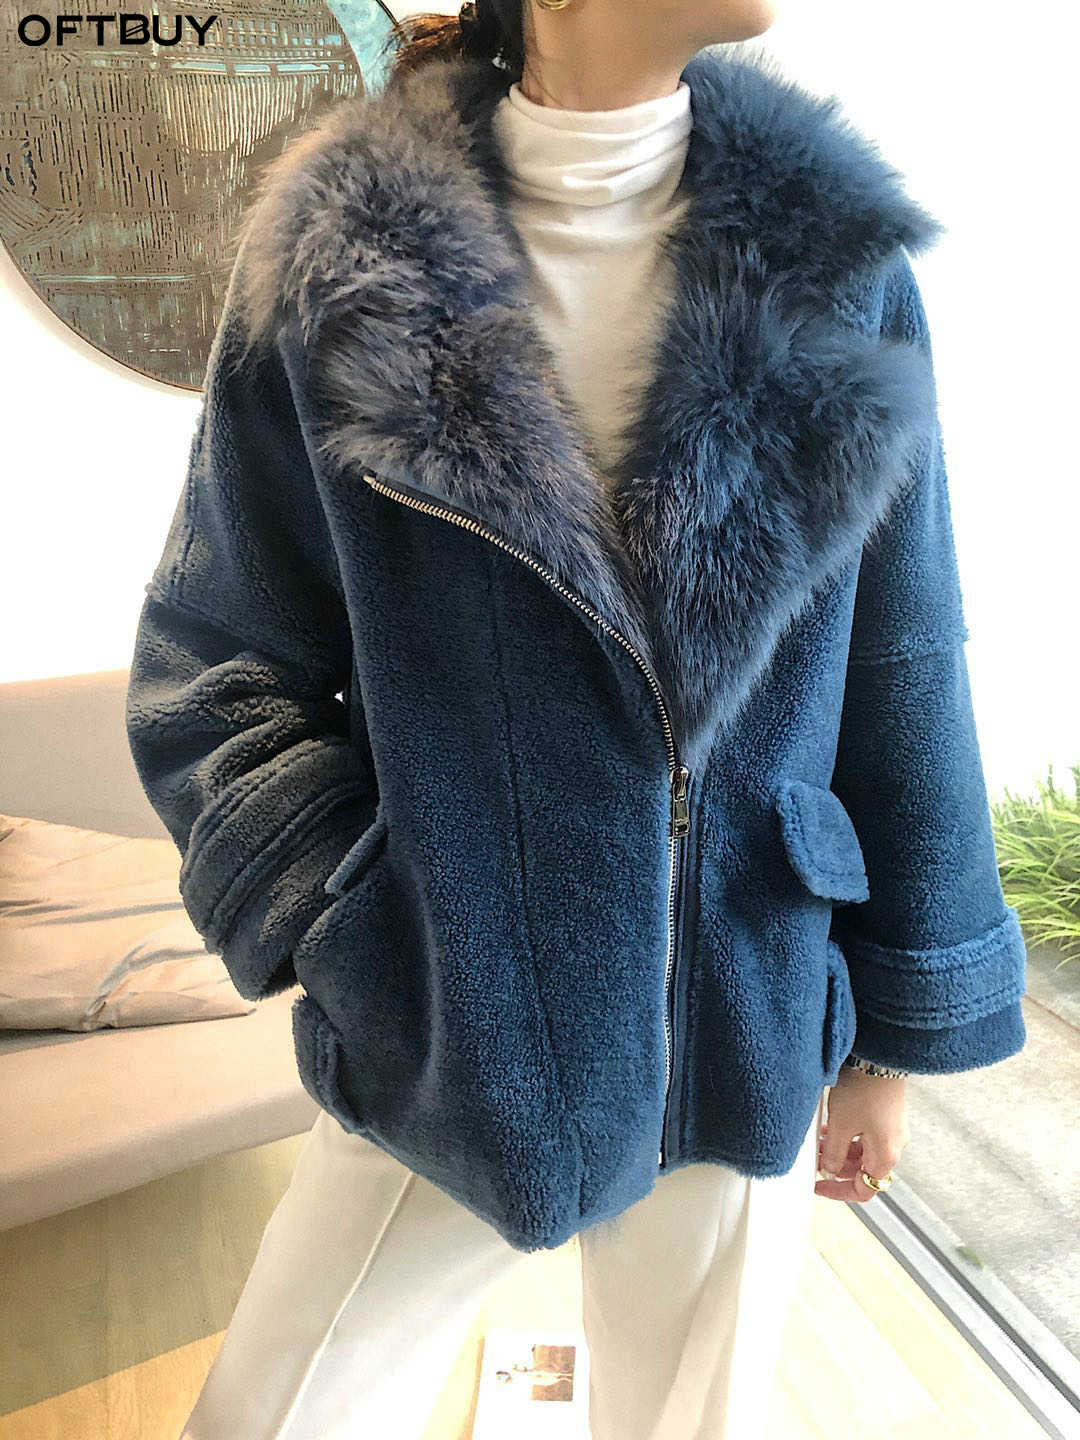 OFTBUY 2019 Real Fur Coat Winter Jacket Women Granule Lambswool Female Natural Fox Fur Collar Sheep Shearing Fur Outerwear Warm